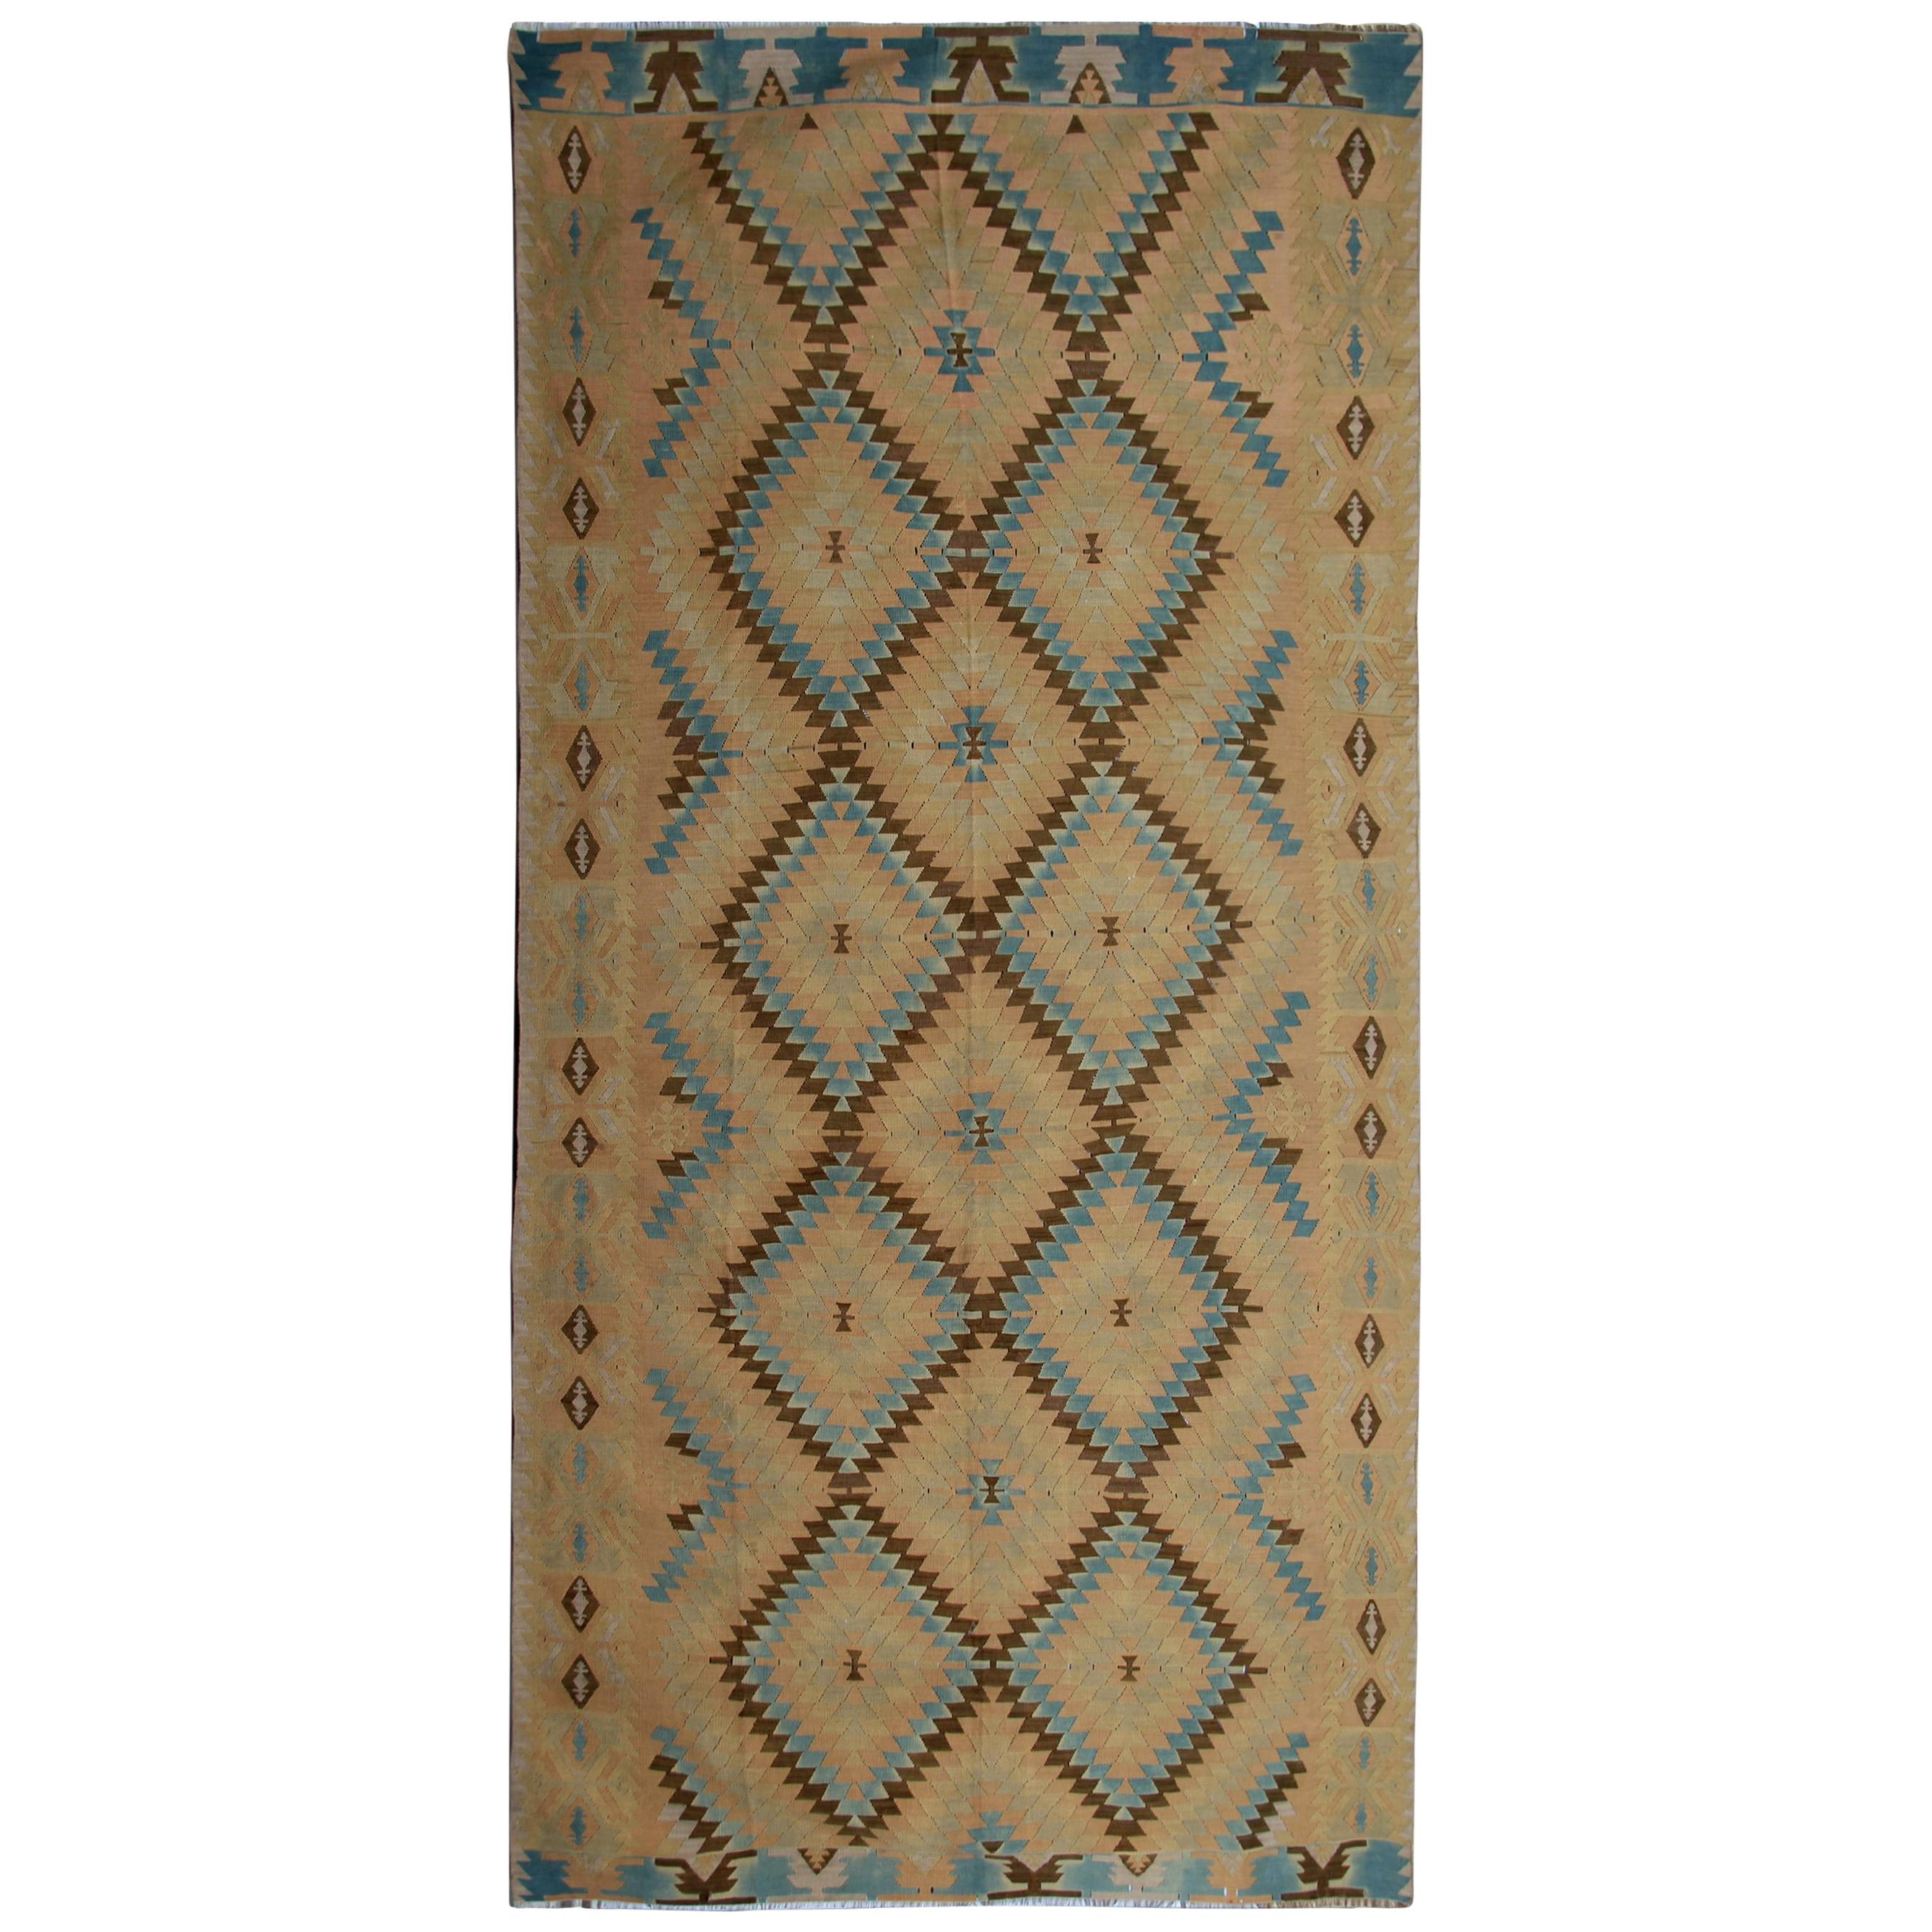 Oriental Rug Yellow Geometric Kilim Rug Traditional Antique Runner Rug